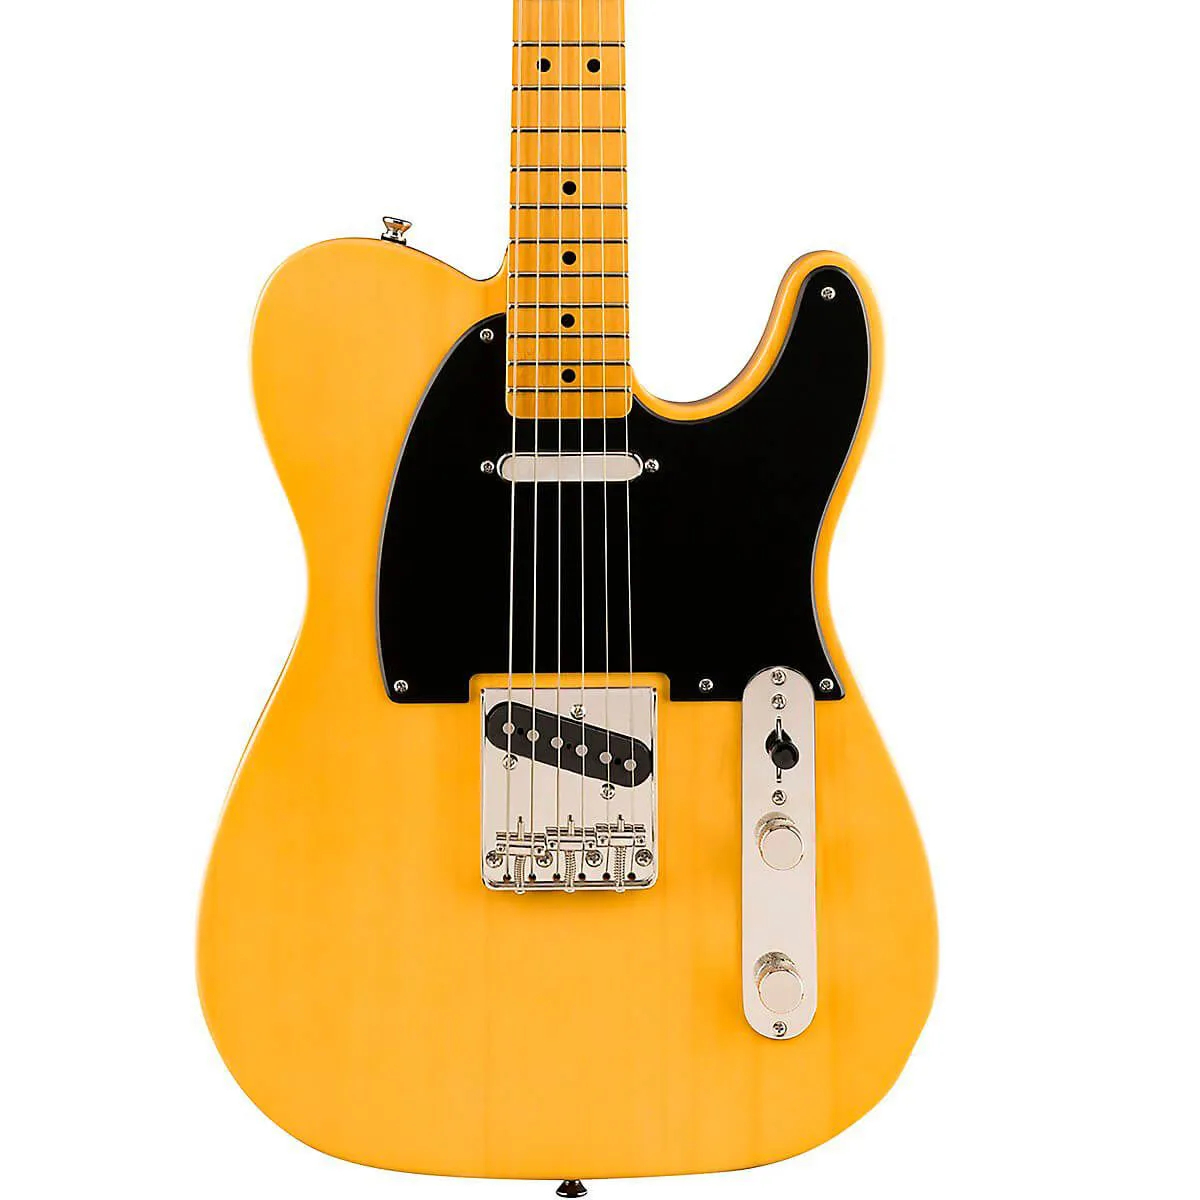 Guitarra Fender Squier Classic Vibe 50s Telecaster Butterscotch Blonde